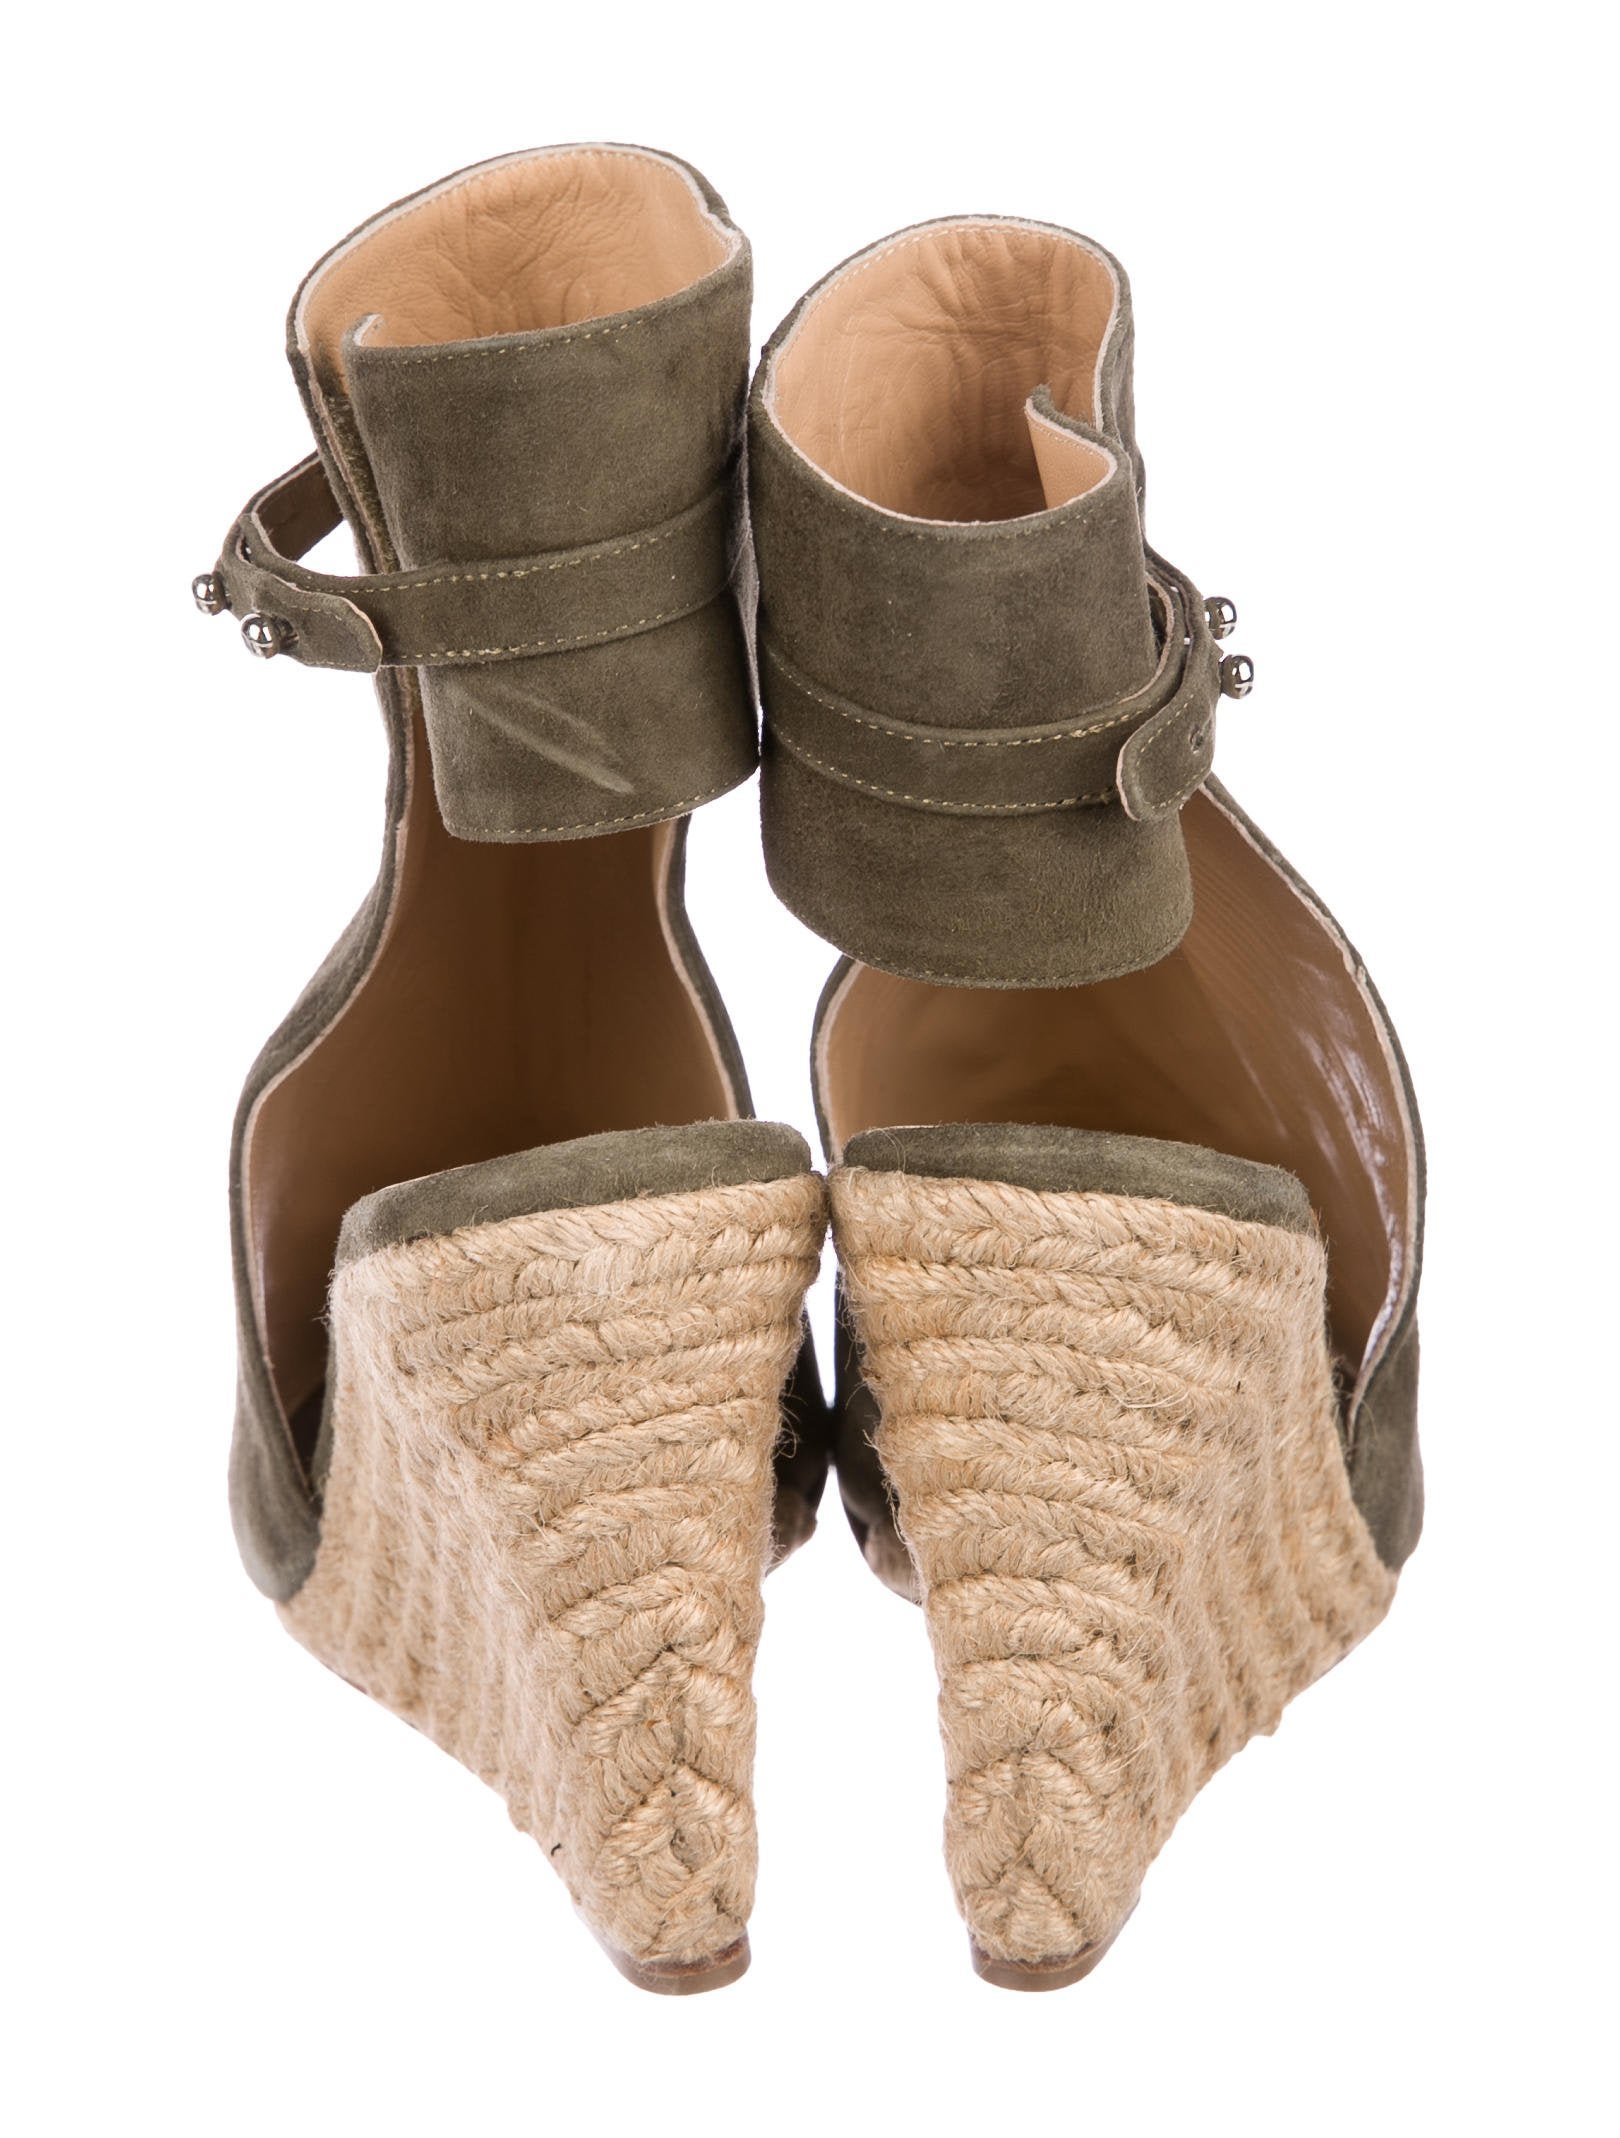 Hôtel Particulier Espadrille Wedge Sandals w/ Tags under $60 cheap online factory outlet sale online free shipping choice buy cheap comfortable original for sale we6lipPx